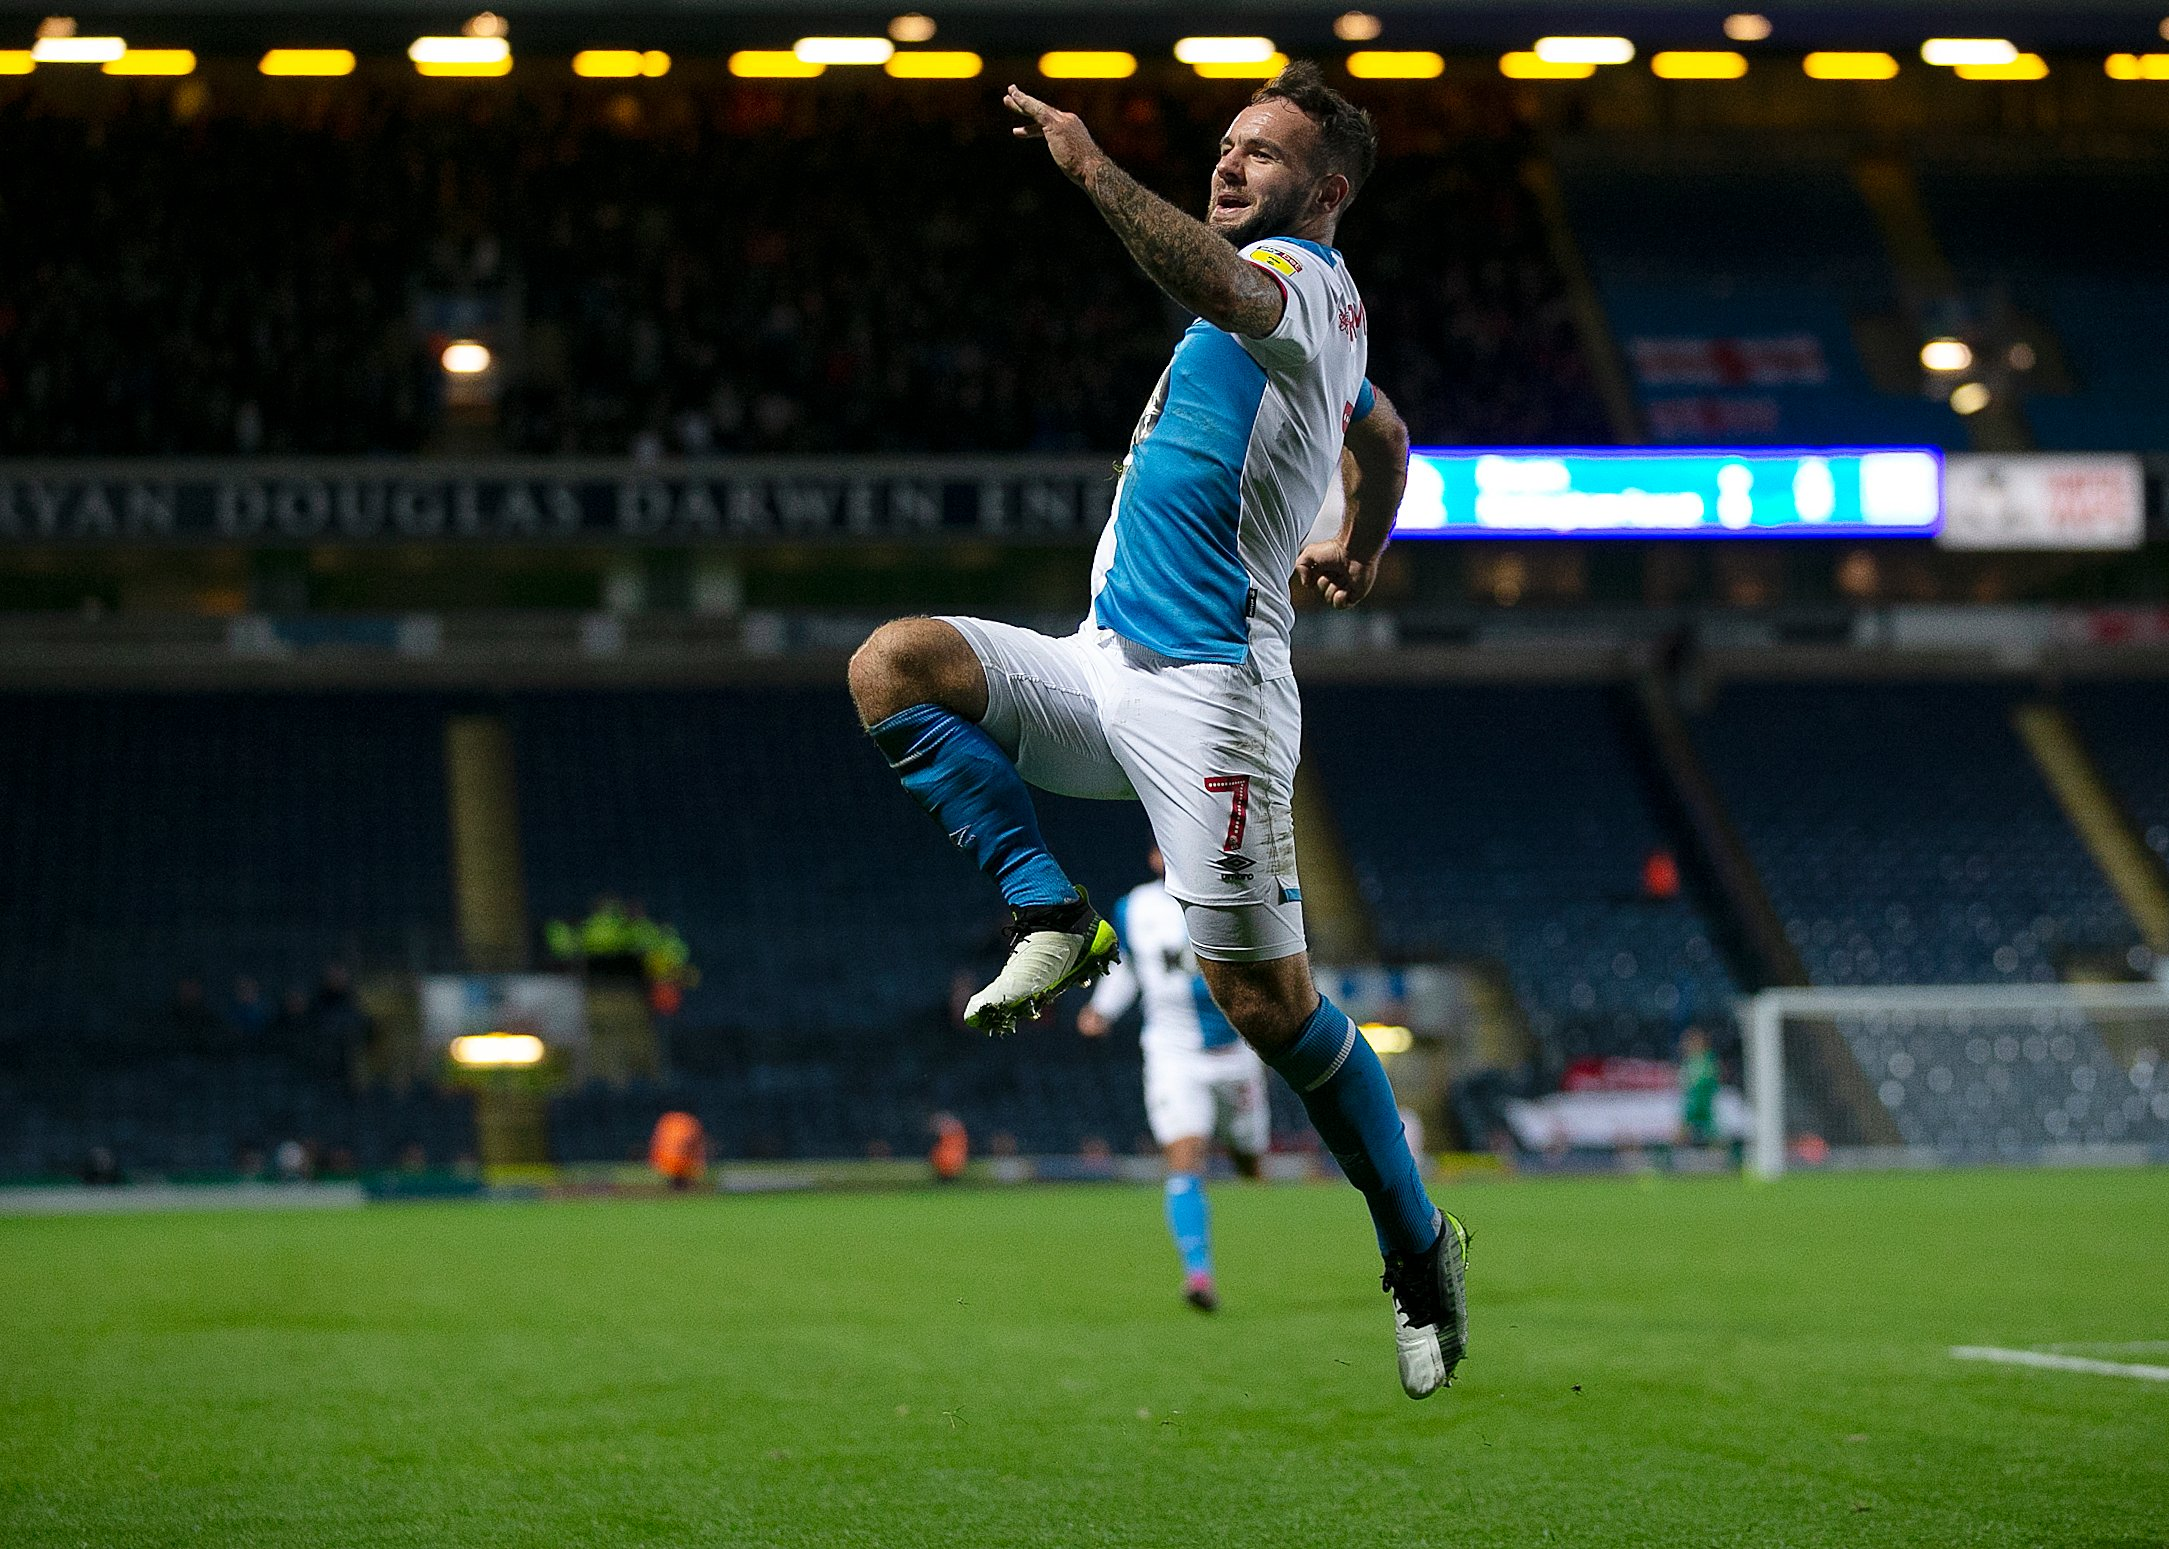 Tony Mowbray impressed with Adam Armstrong after hat-trick against Wycombe